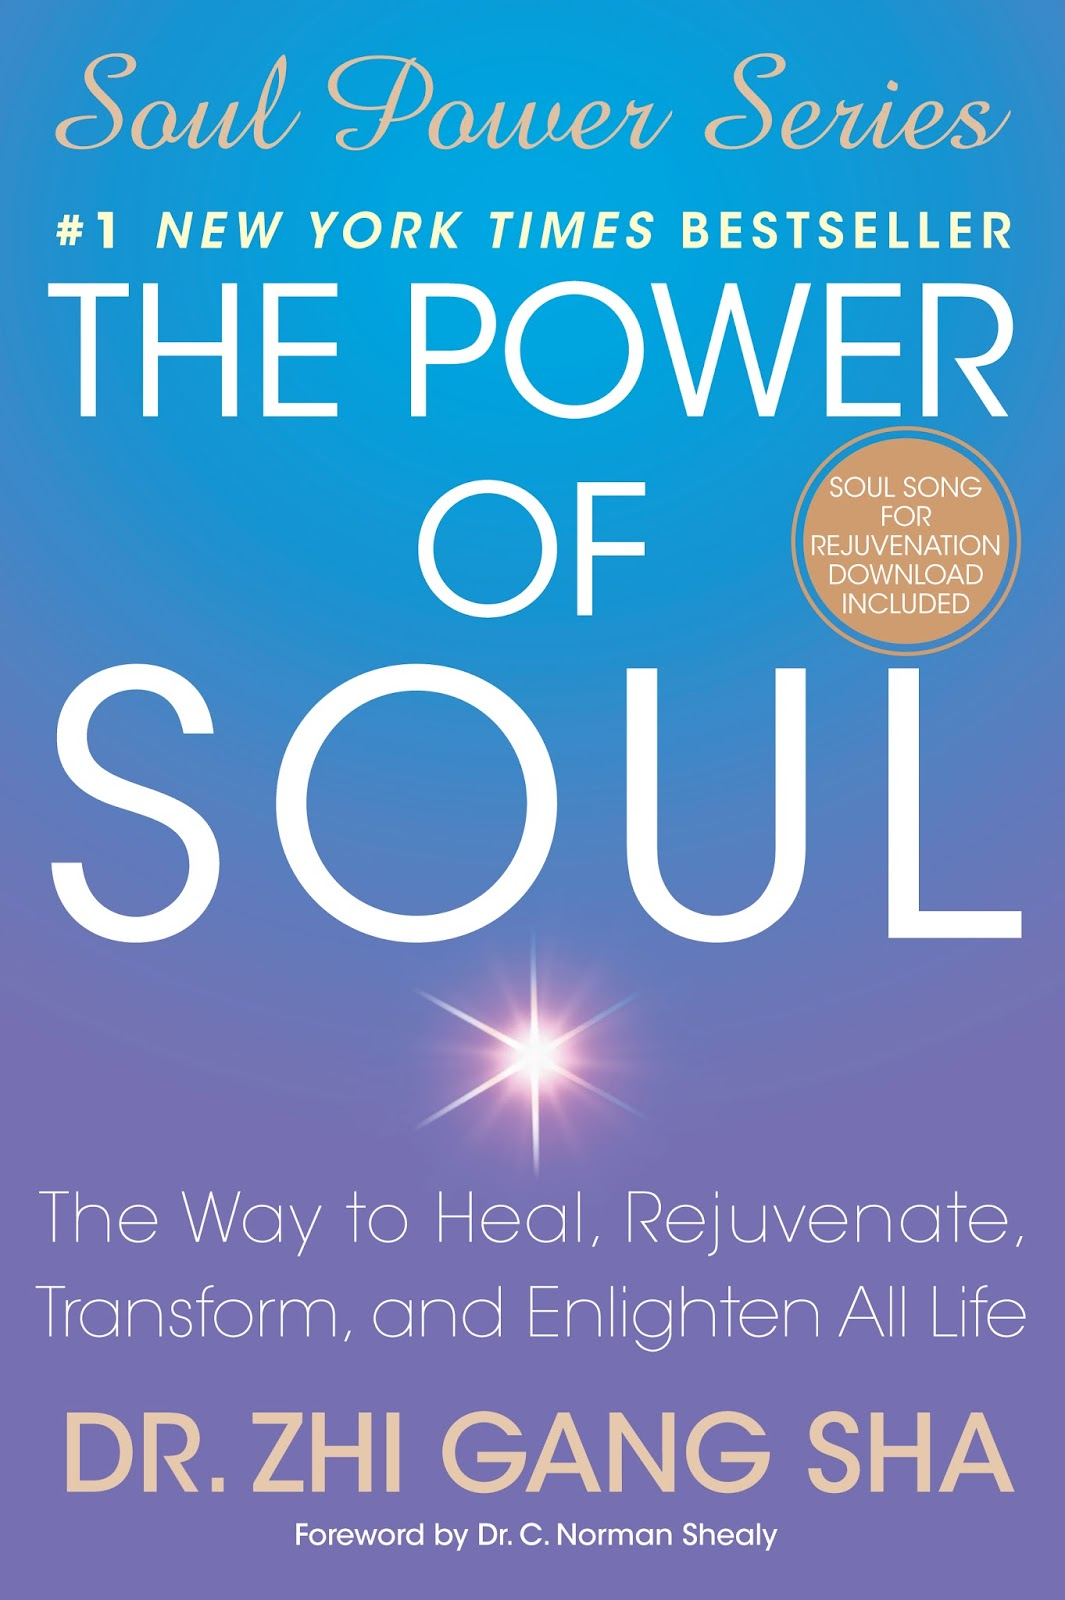 My Soul Healing Miracles: Balance and Harmonize Soul, Heart, Mind